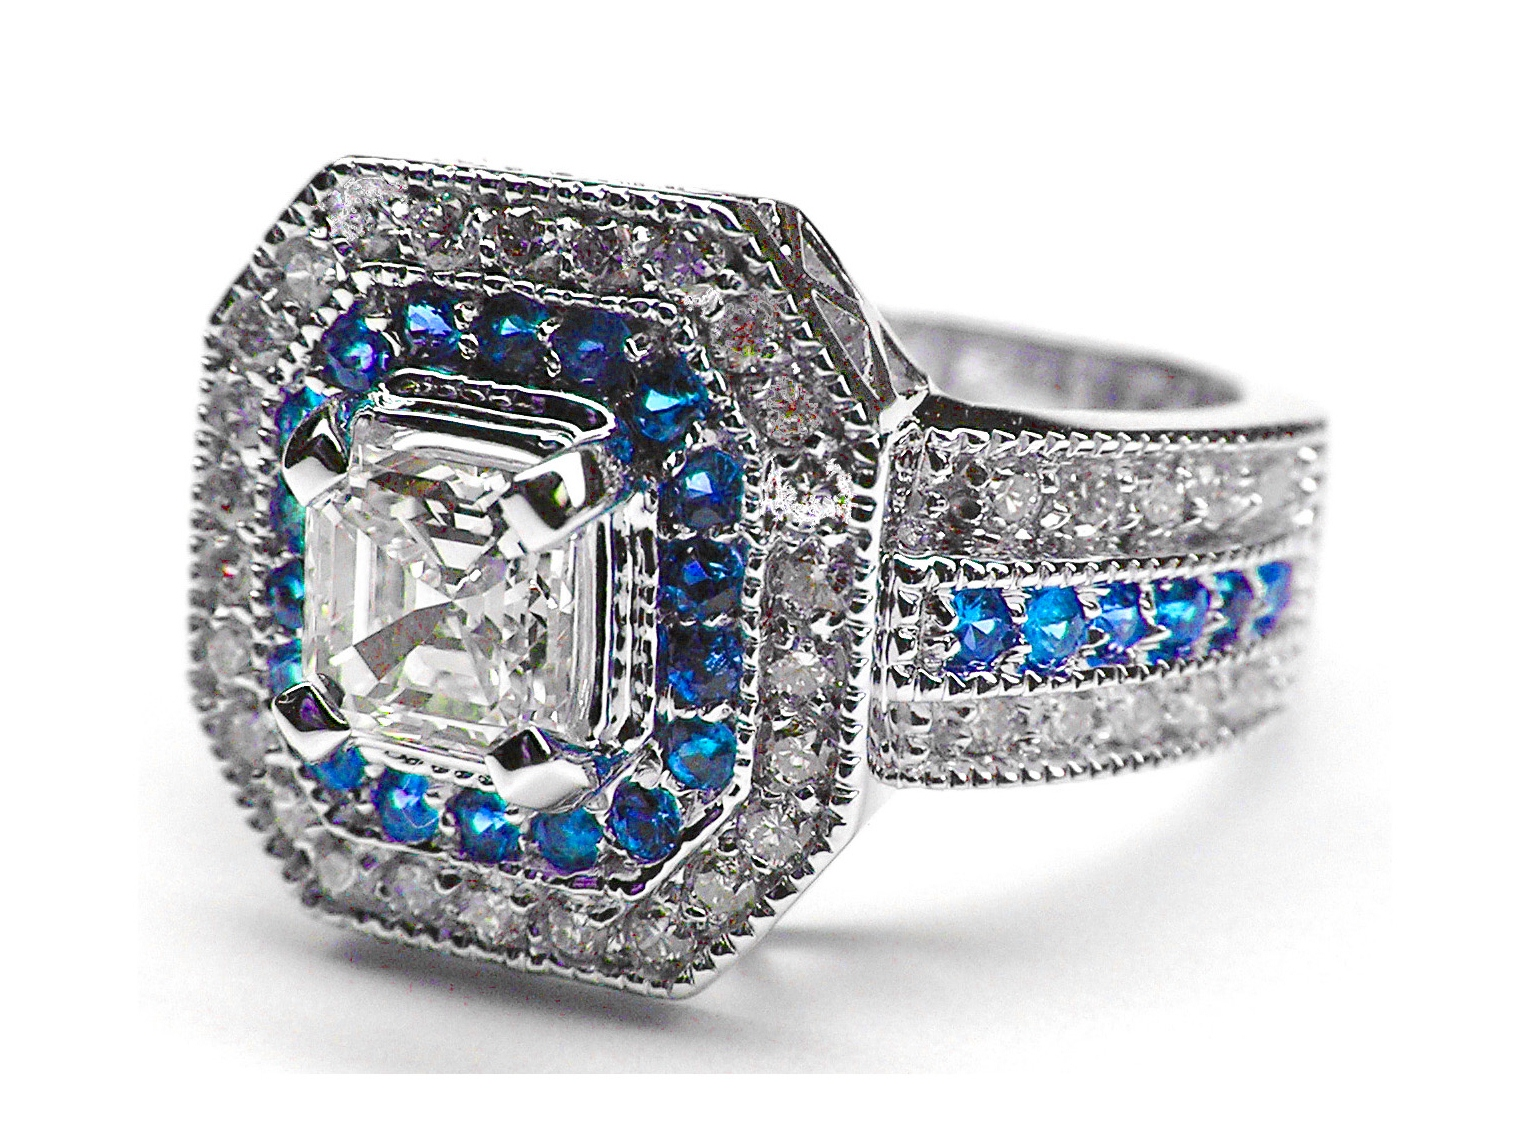 Square Halo Diamonds & Blue Sapphires  Asscher Cut Engagement Ring 0.45 tcw. In 14K White Gold